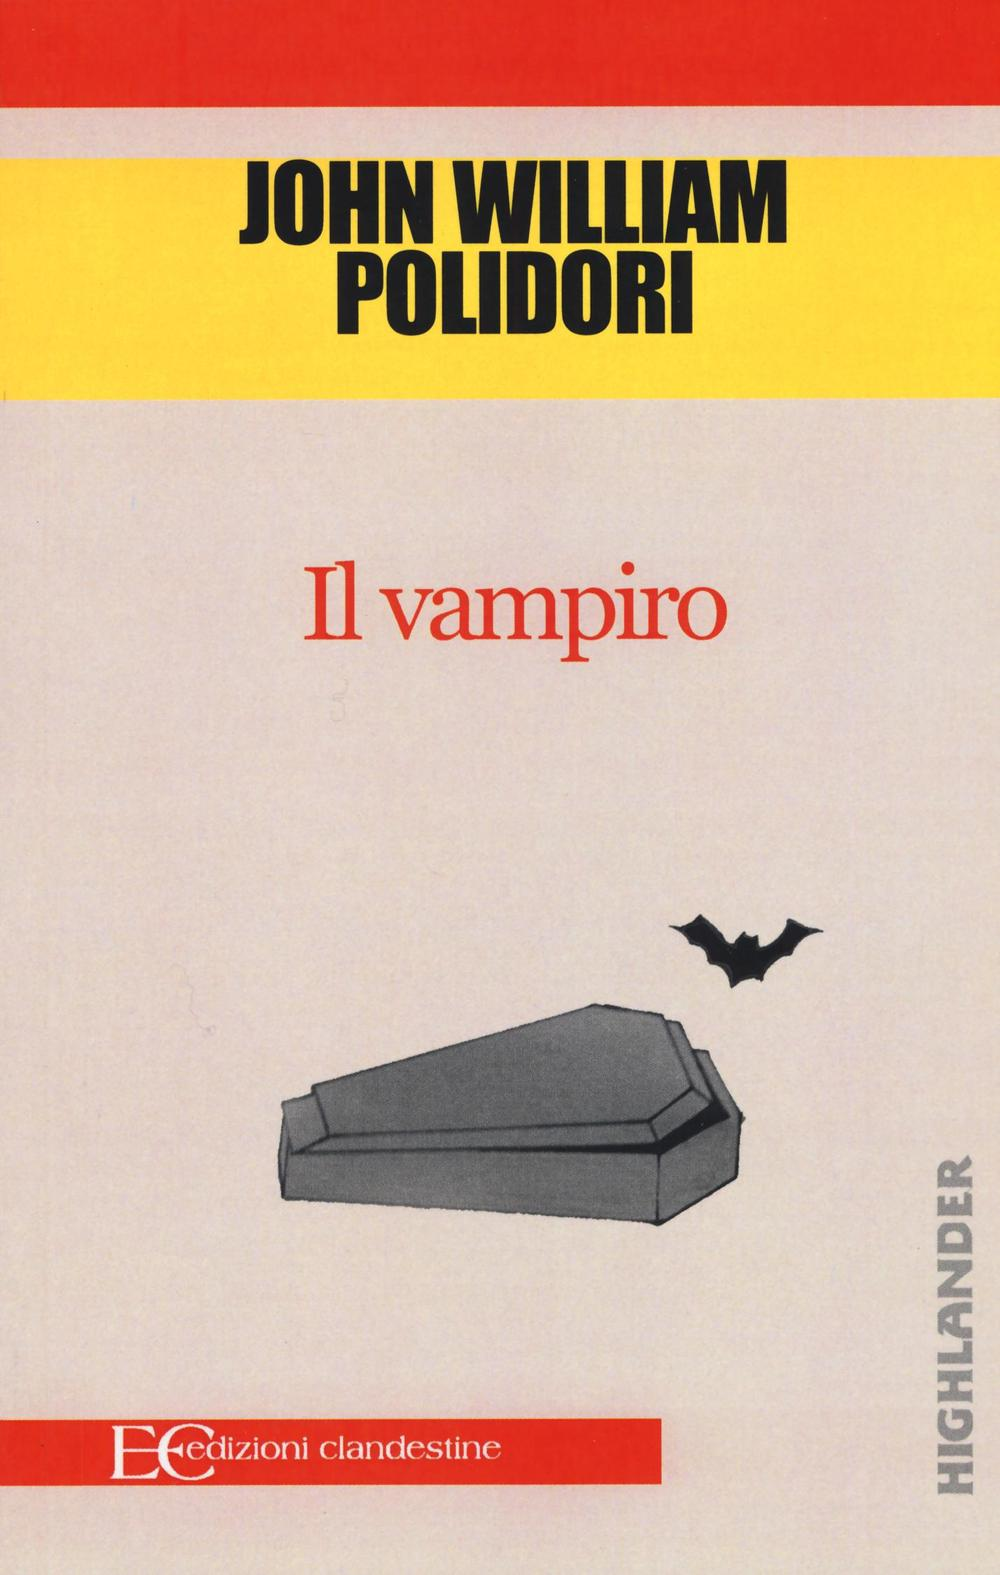 libro el vampiro de john william polidori